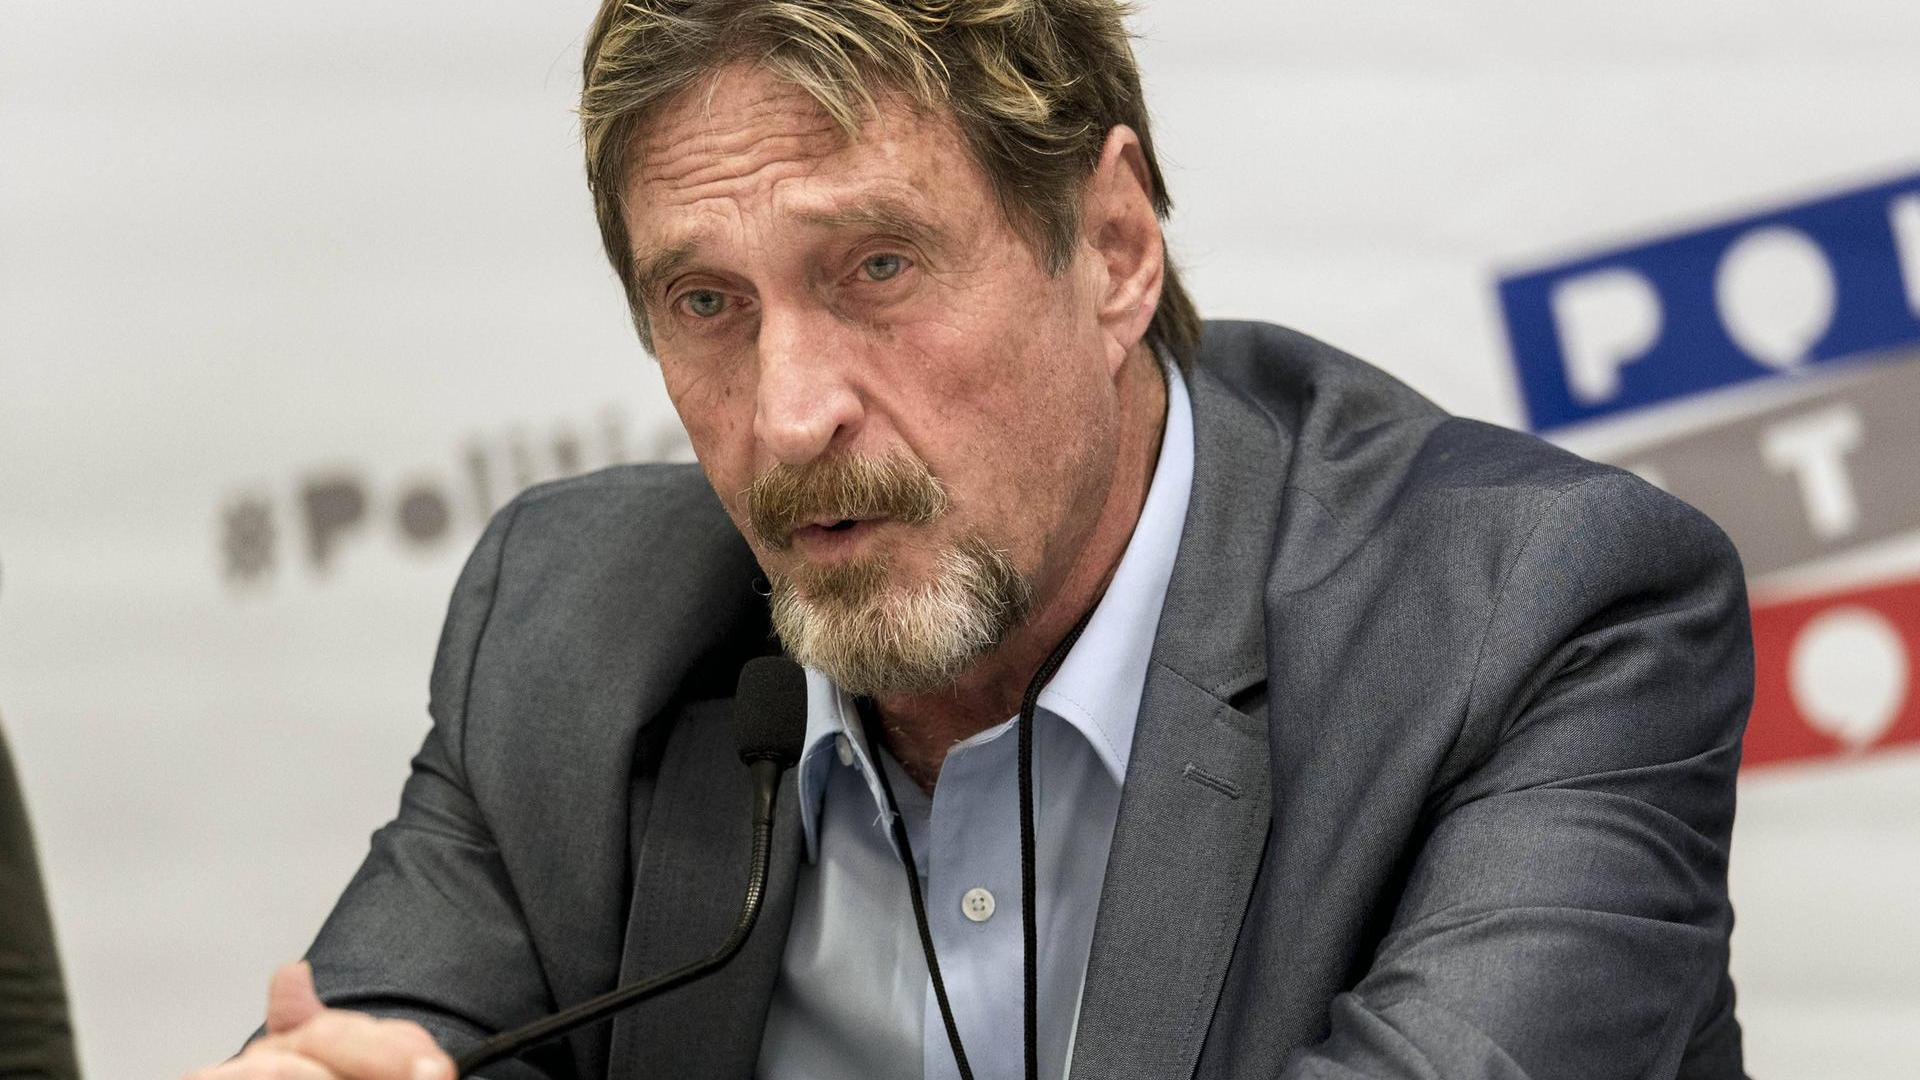 Spain is allowed to extradite John McAfee to the United States